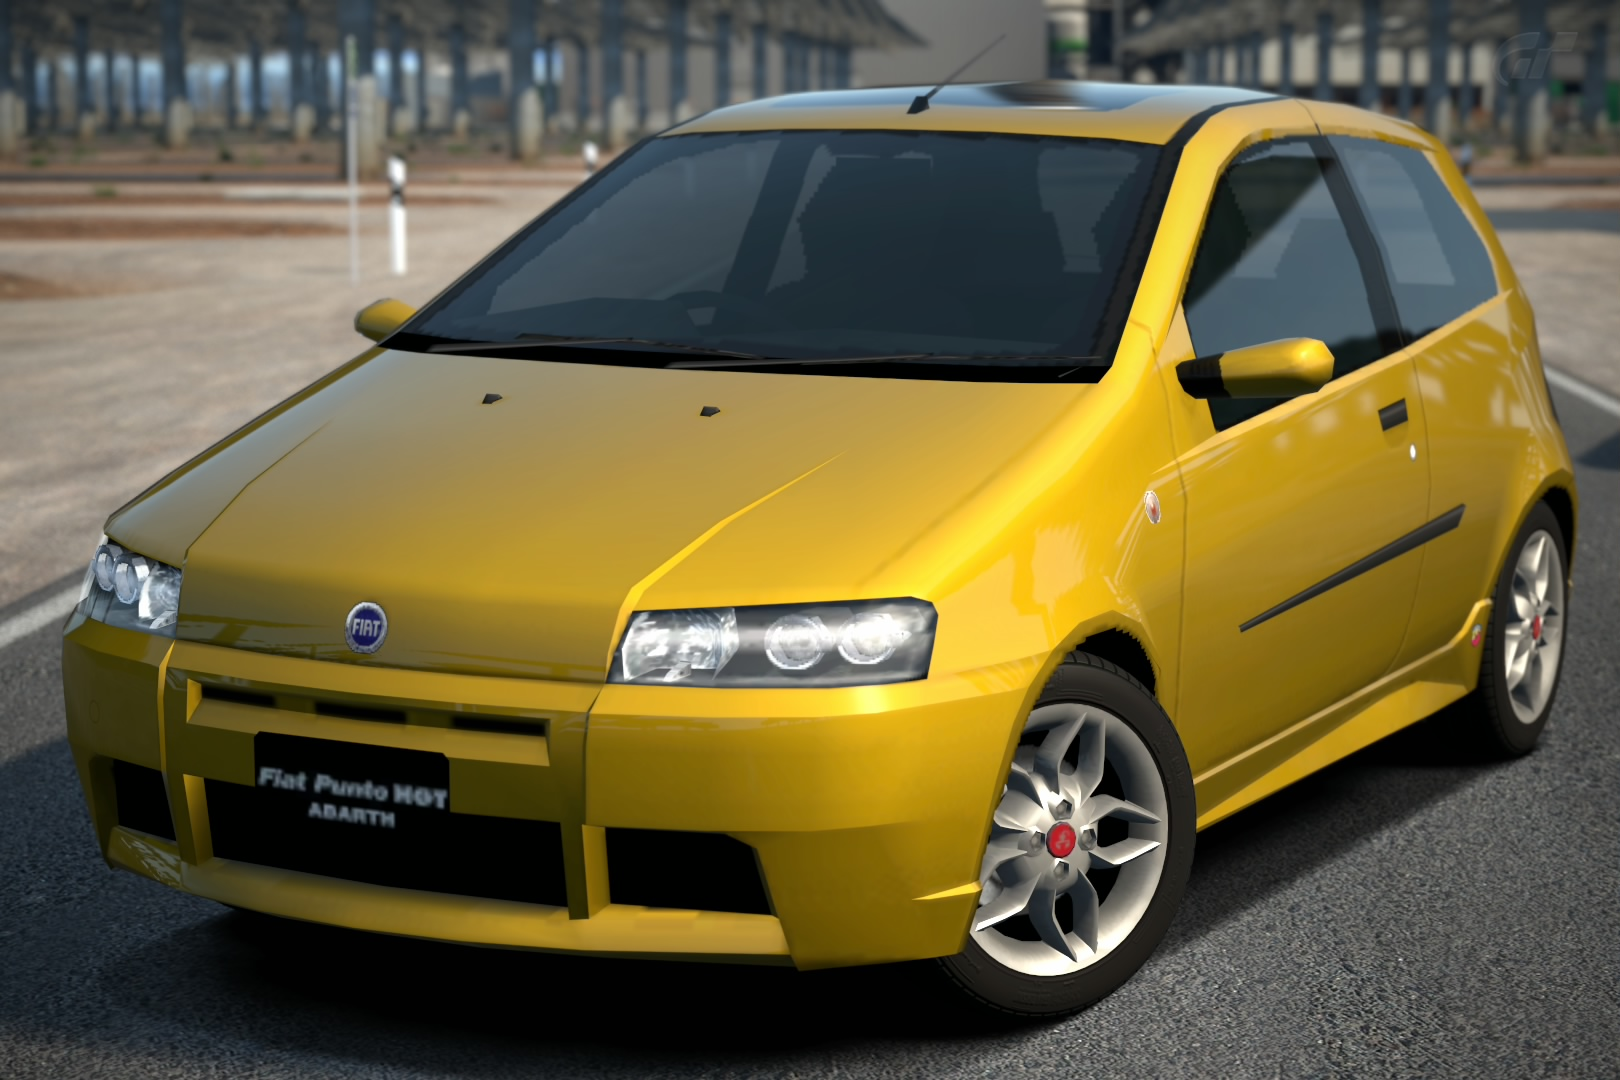 Gran Turismo 5 List Of Featured Cars 2017 2018 Cars